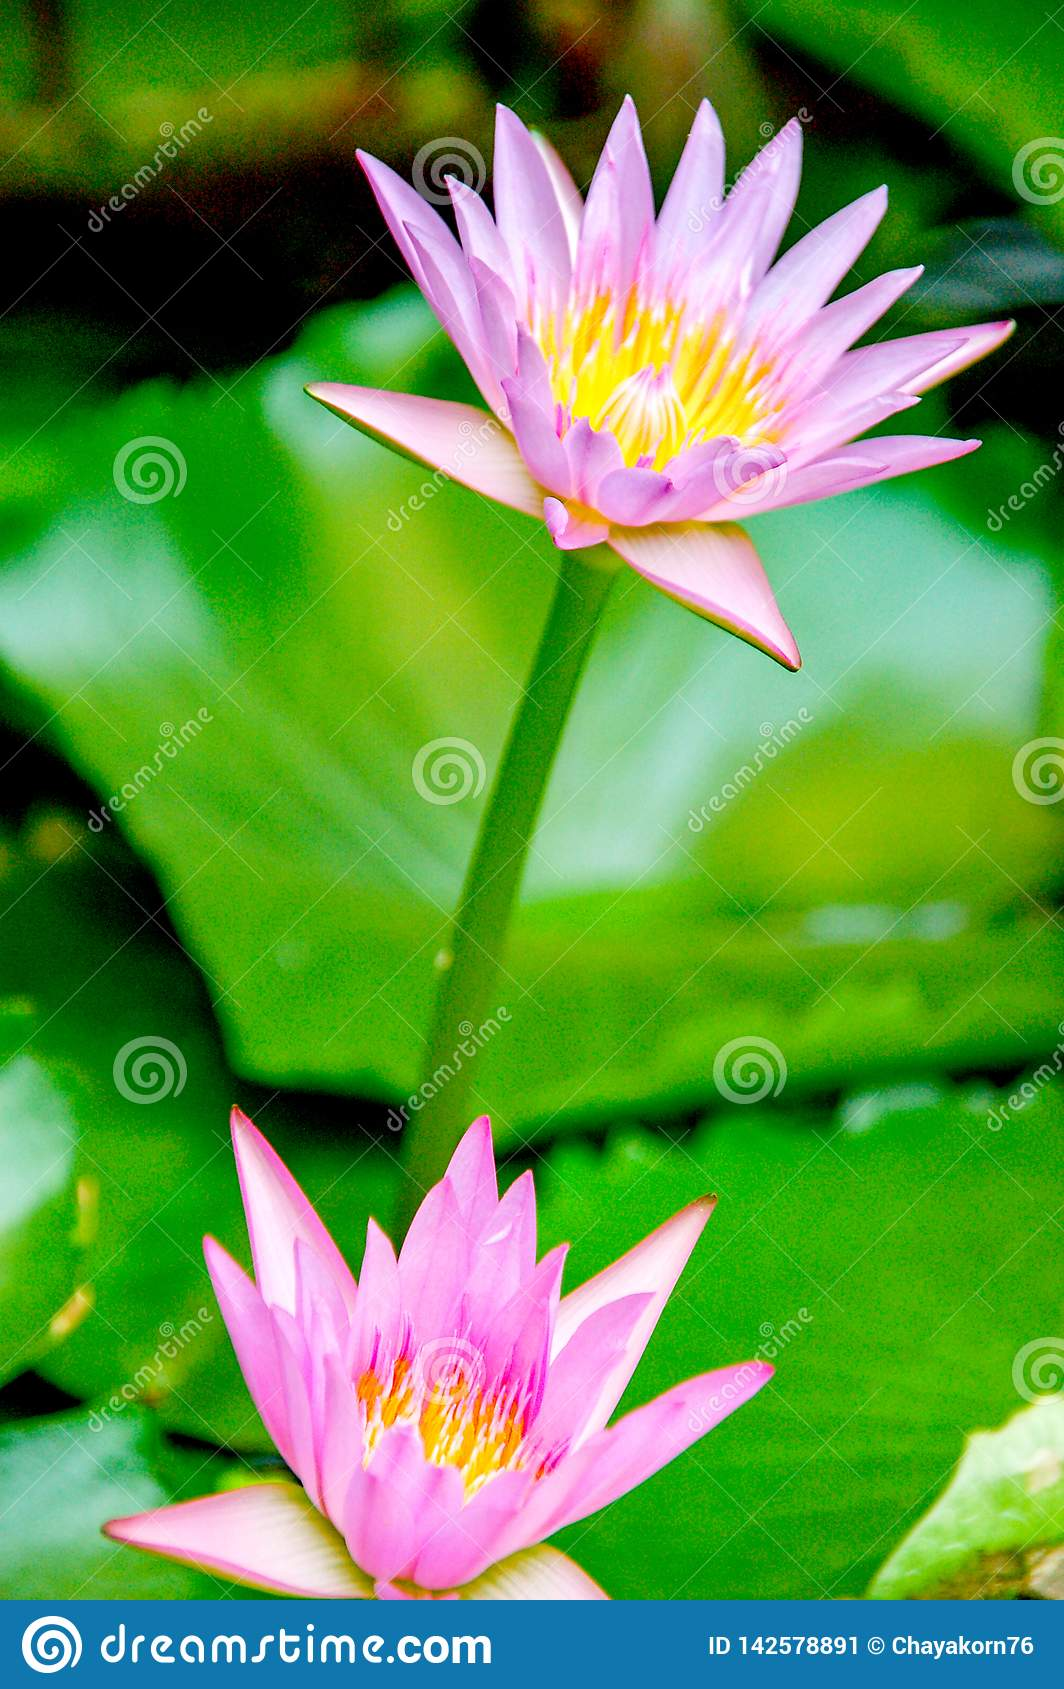 Water Lily Or Asia Lotus Flower With Pink And White Yellow Colour